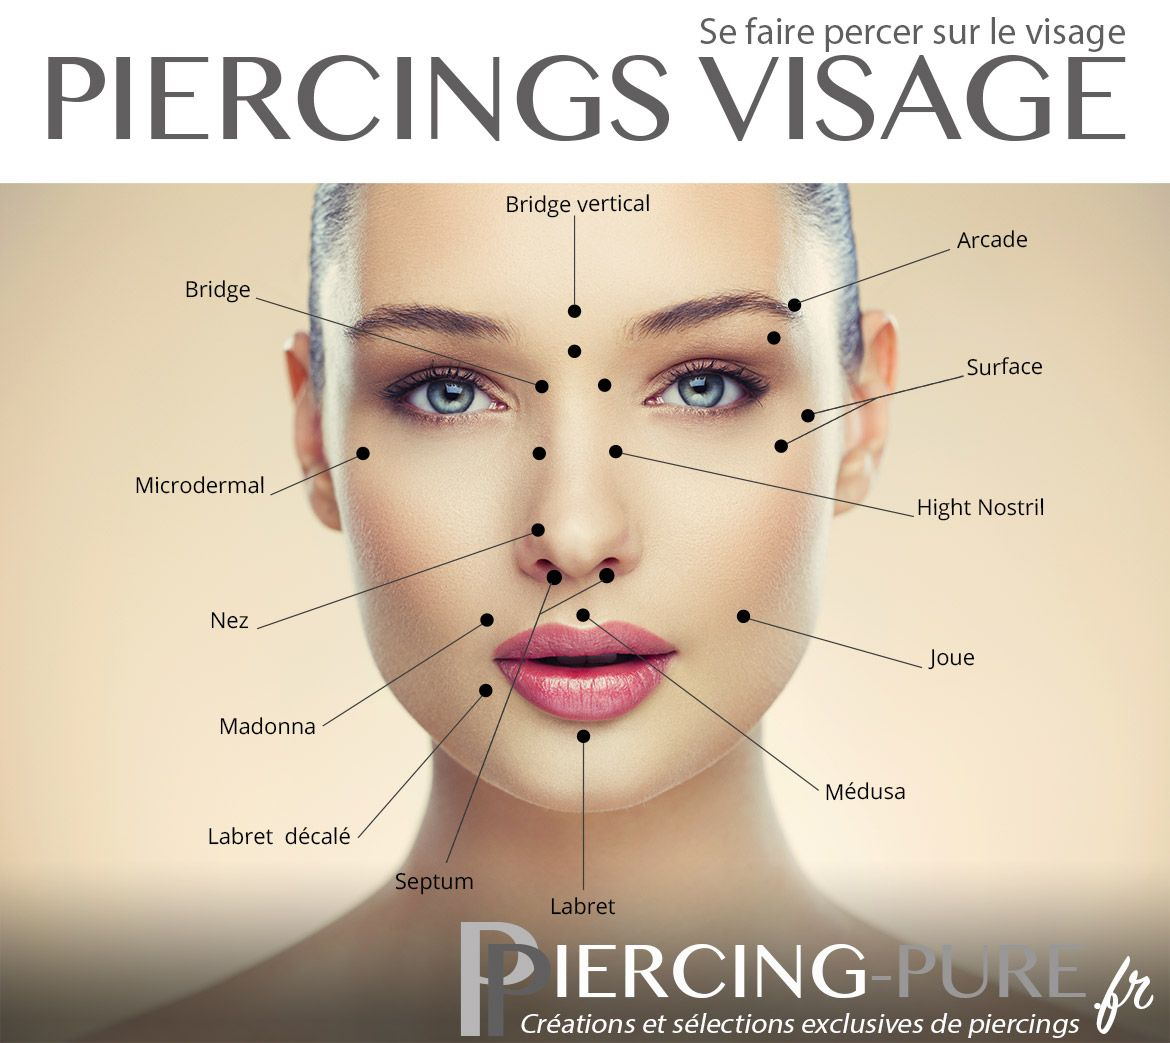 Remarkable, very list of all facial piercings with